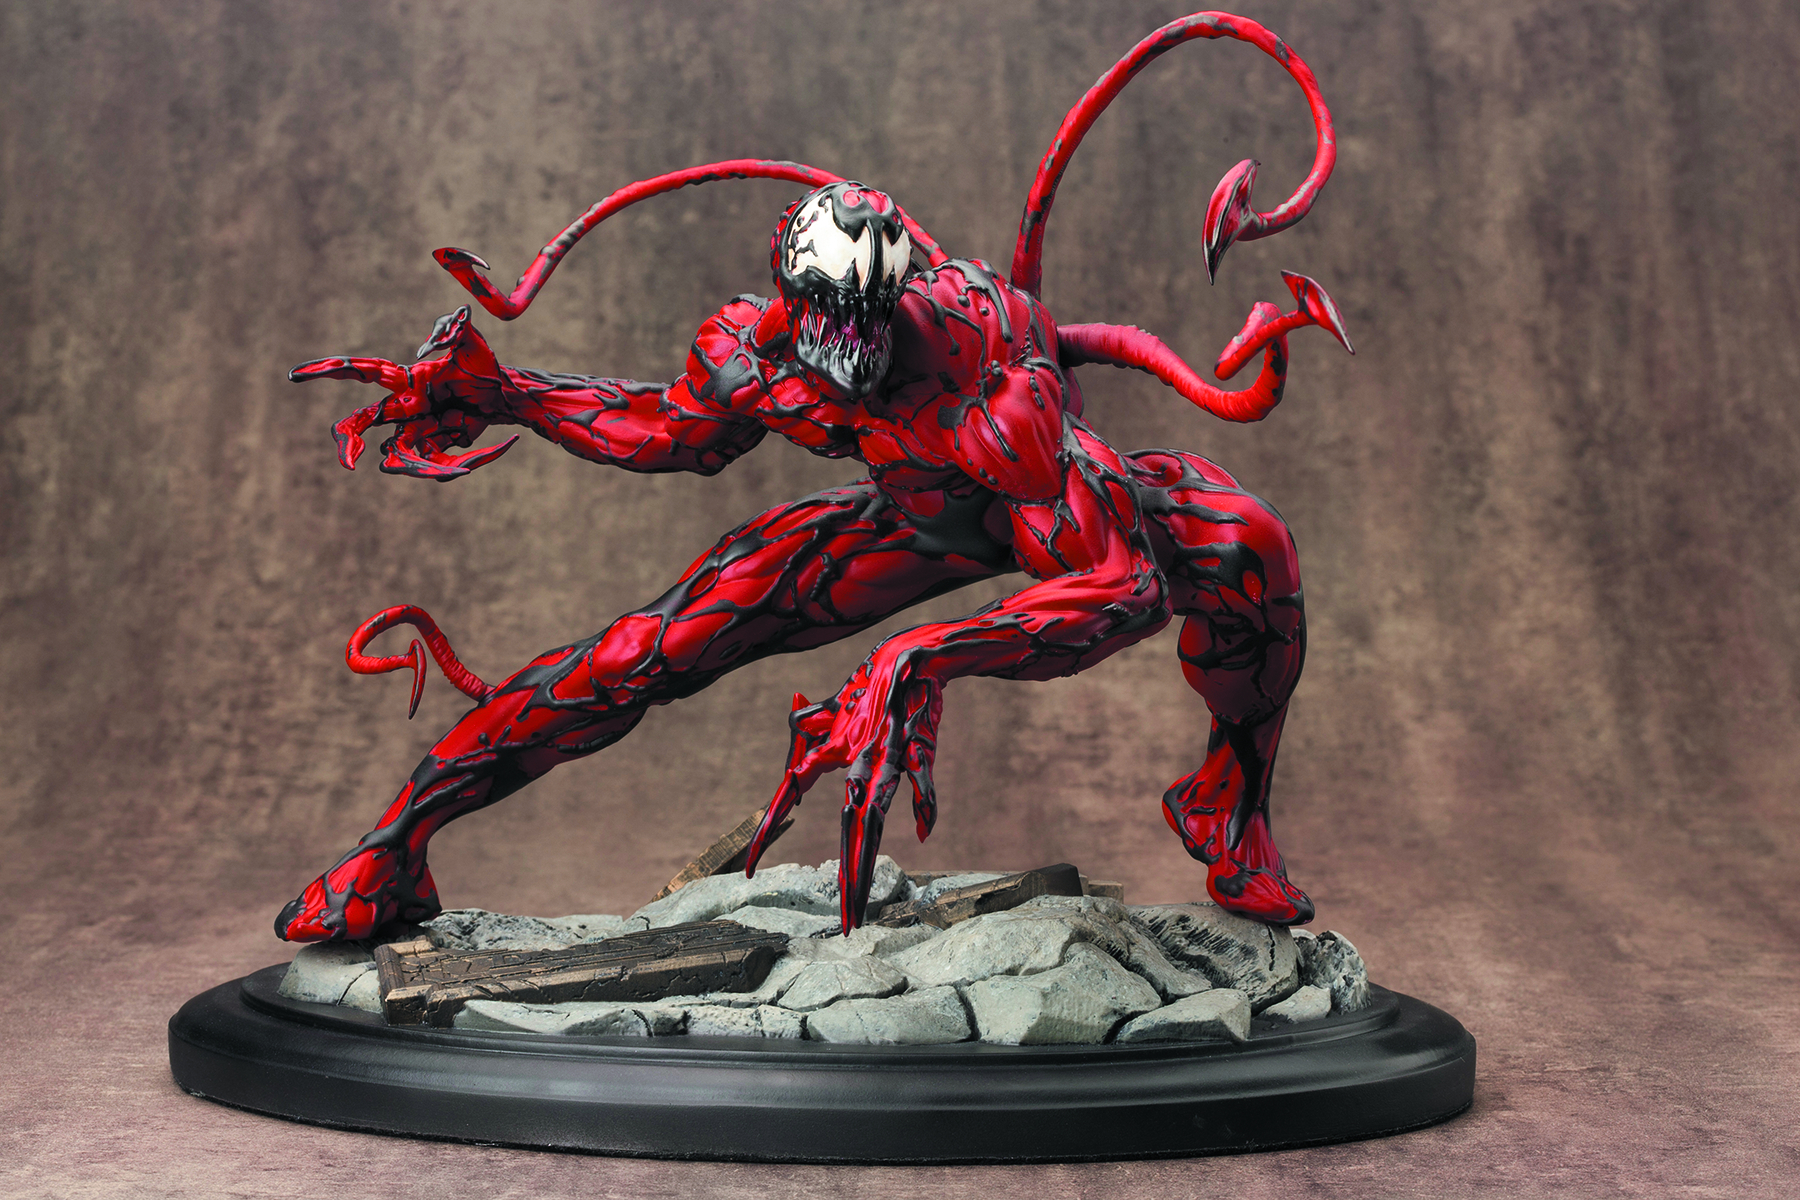 MAXIMUM CARNAGE FINE ART STATUE